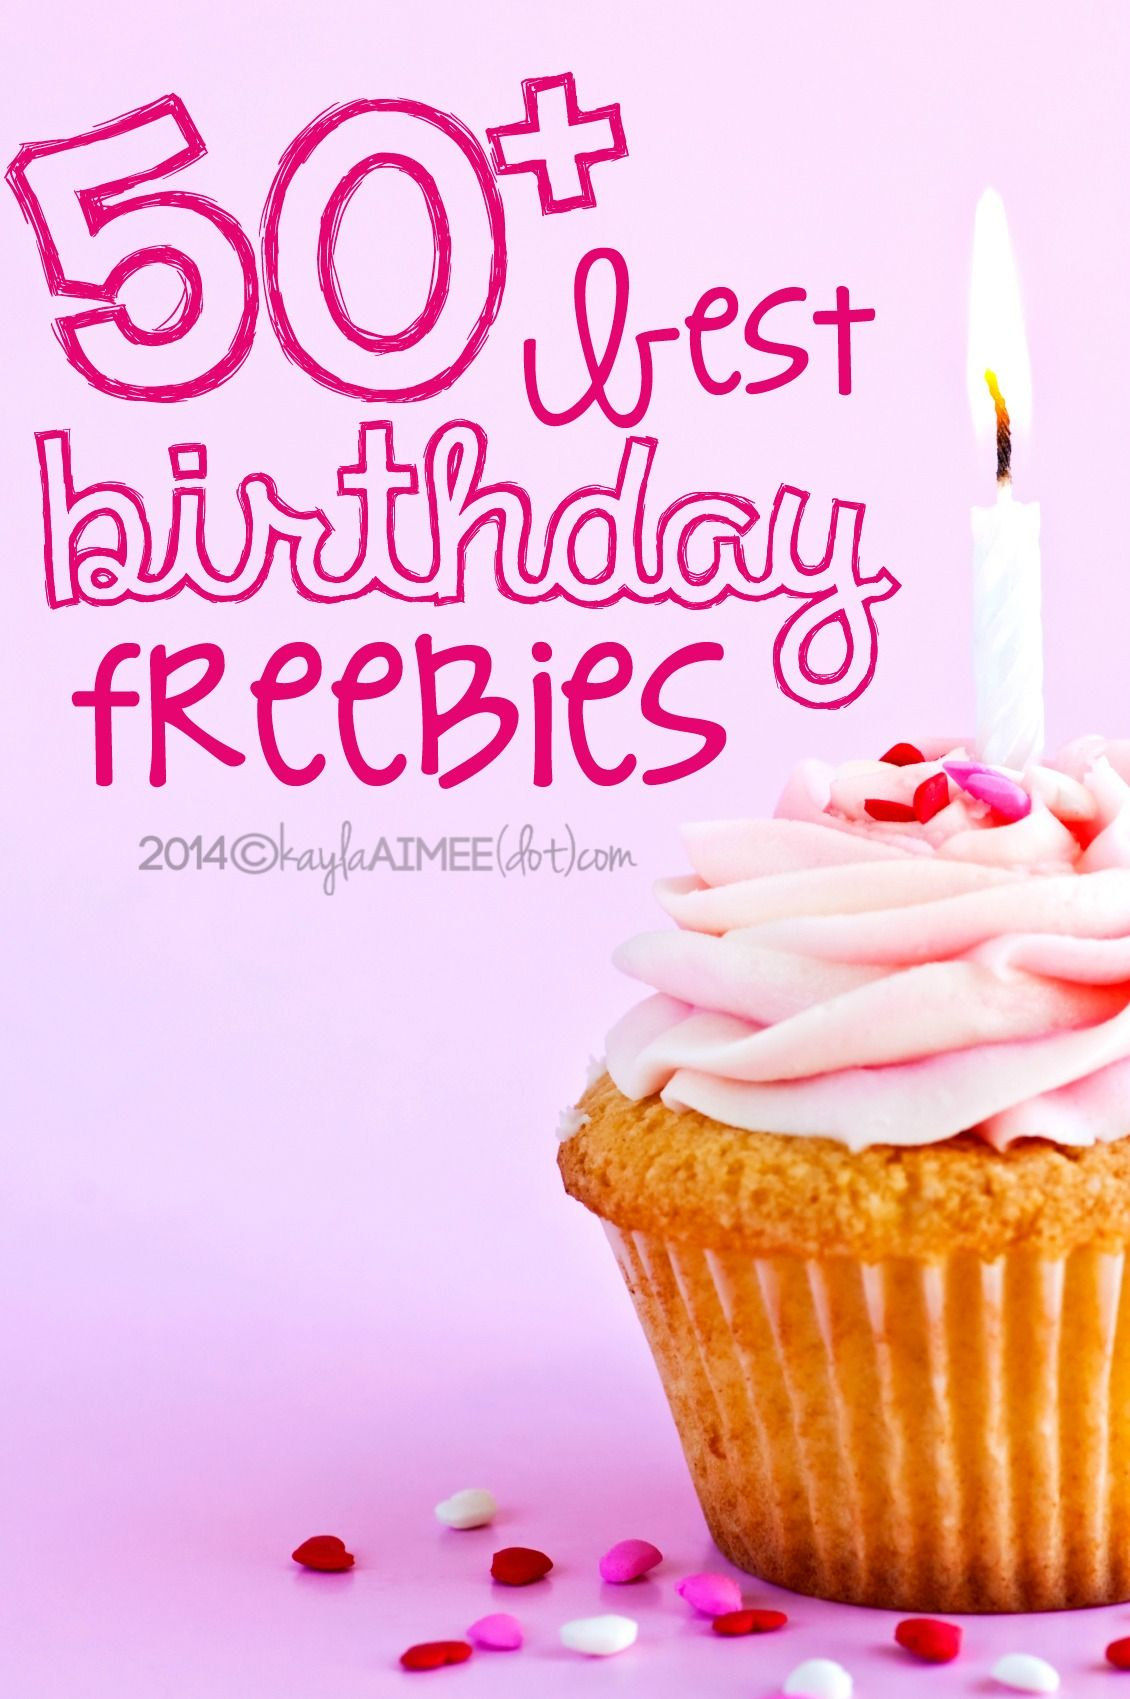 A List Of 50 Best Birthday Freebies From Restaurants Retail Stores So You Can Party Like Its Your Birthdayfor Free